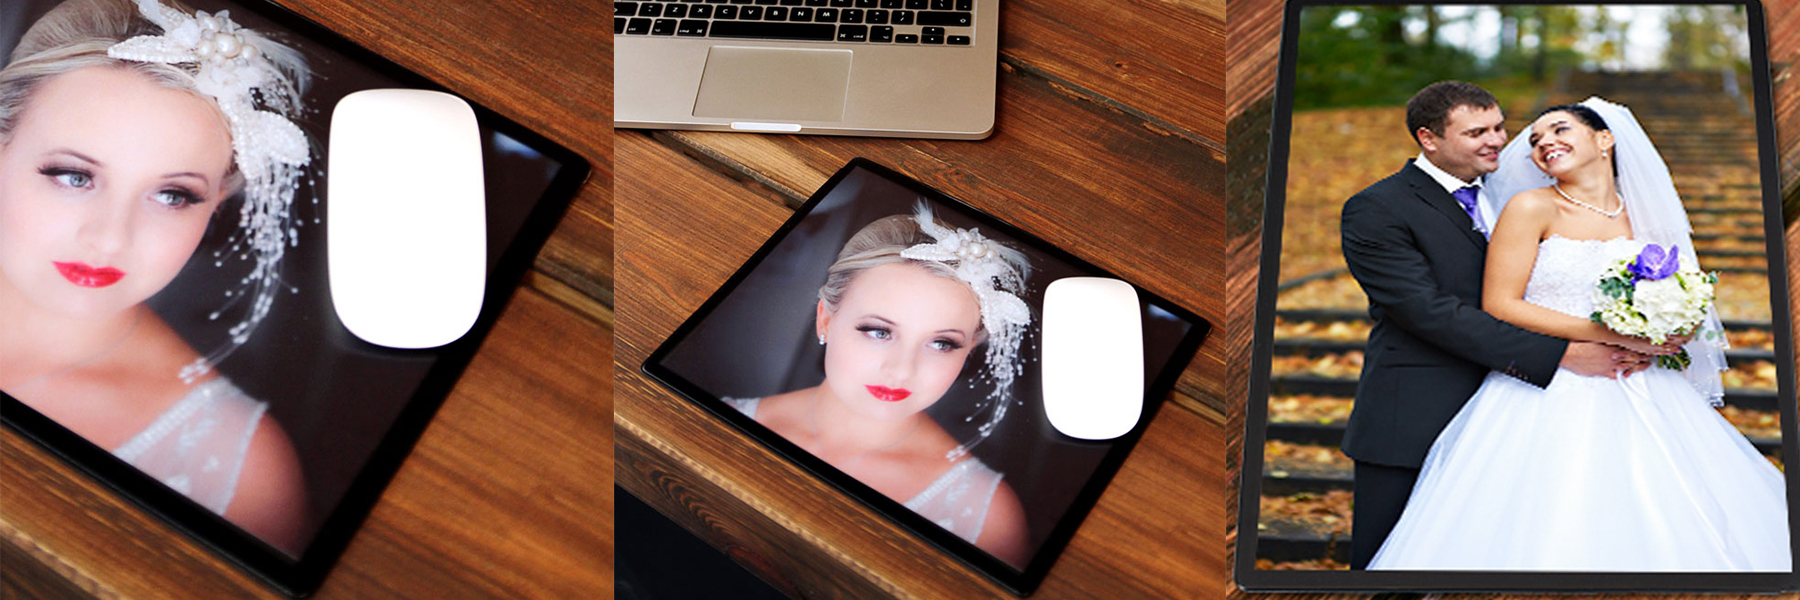 Photographic Mount Mat